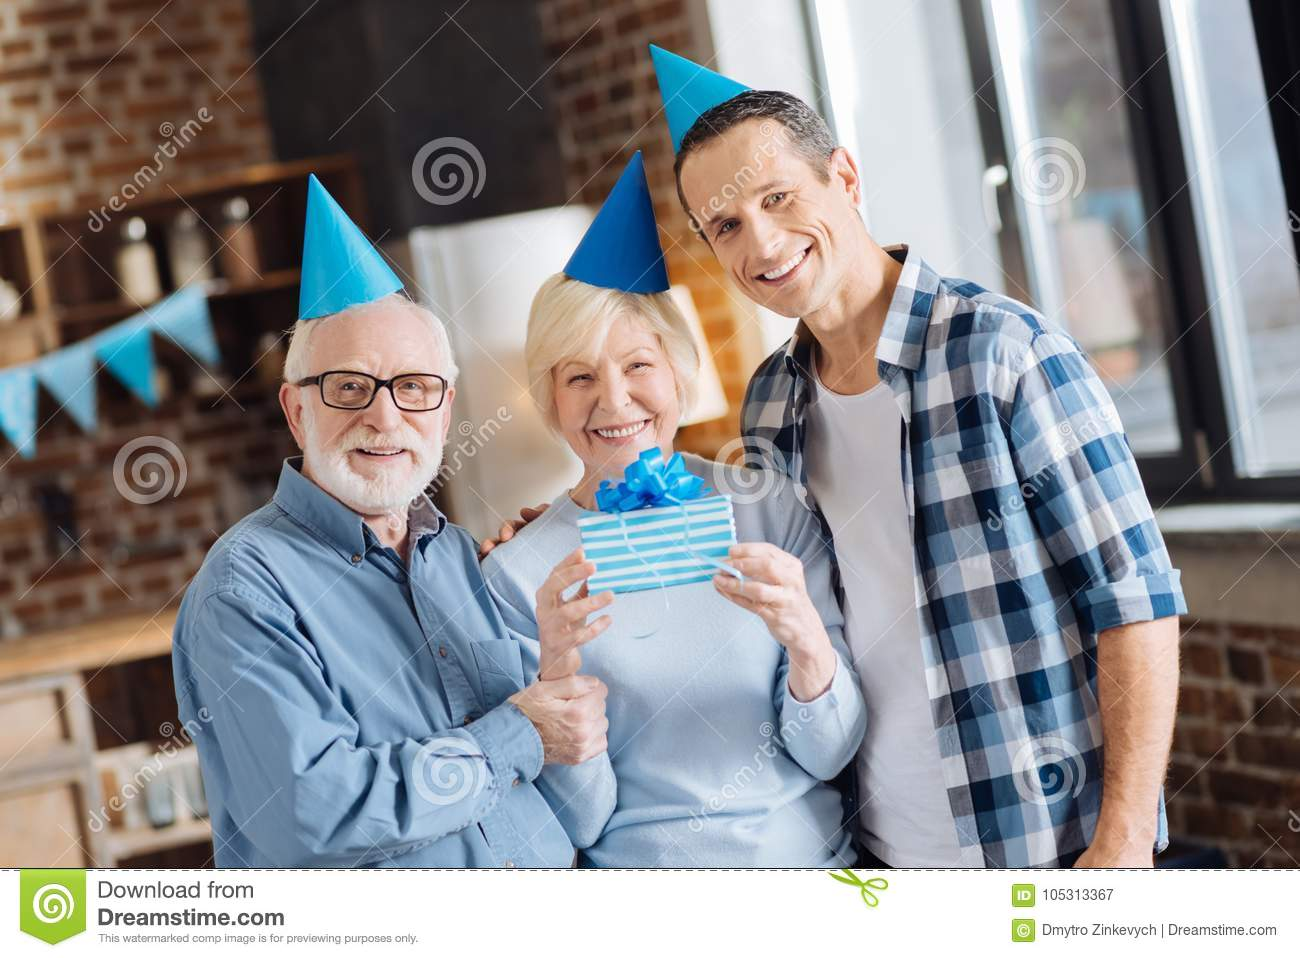 Upbeat Father And Son Posing With Mother Celebrating